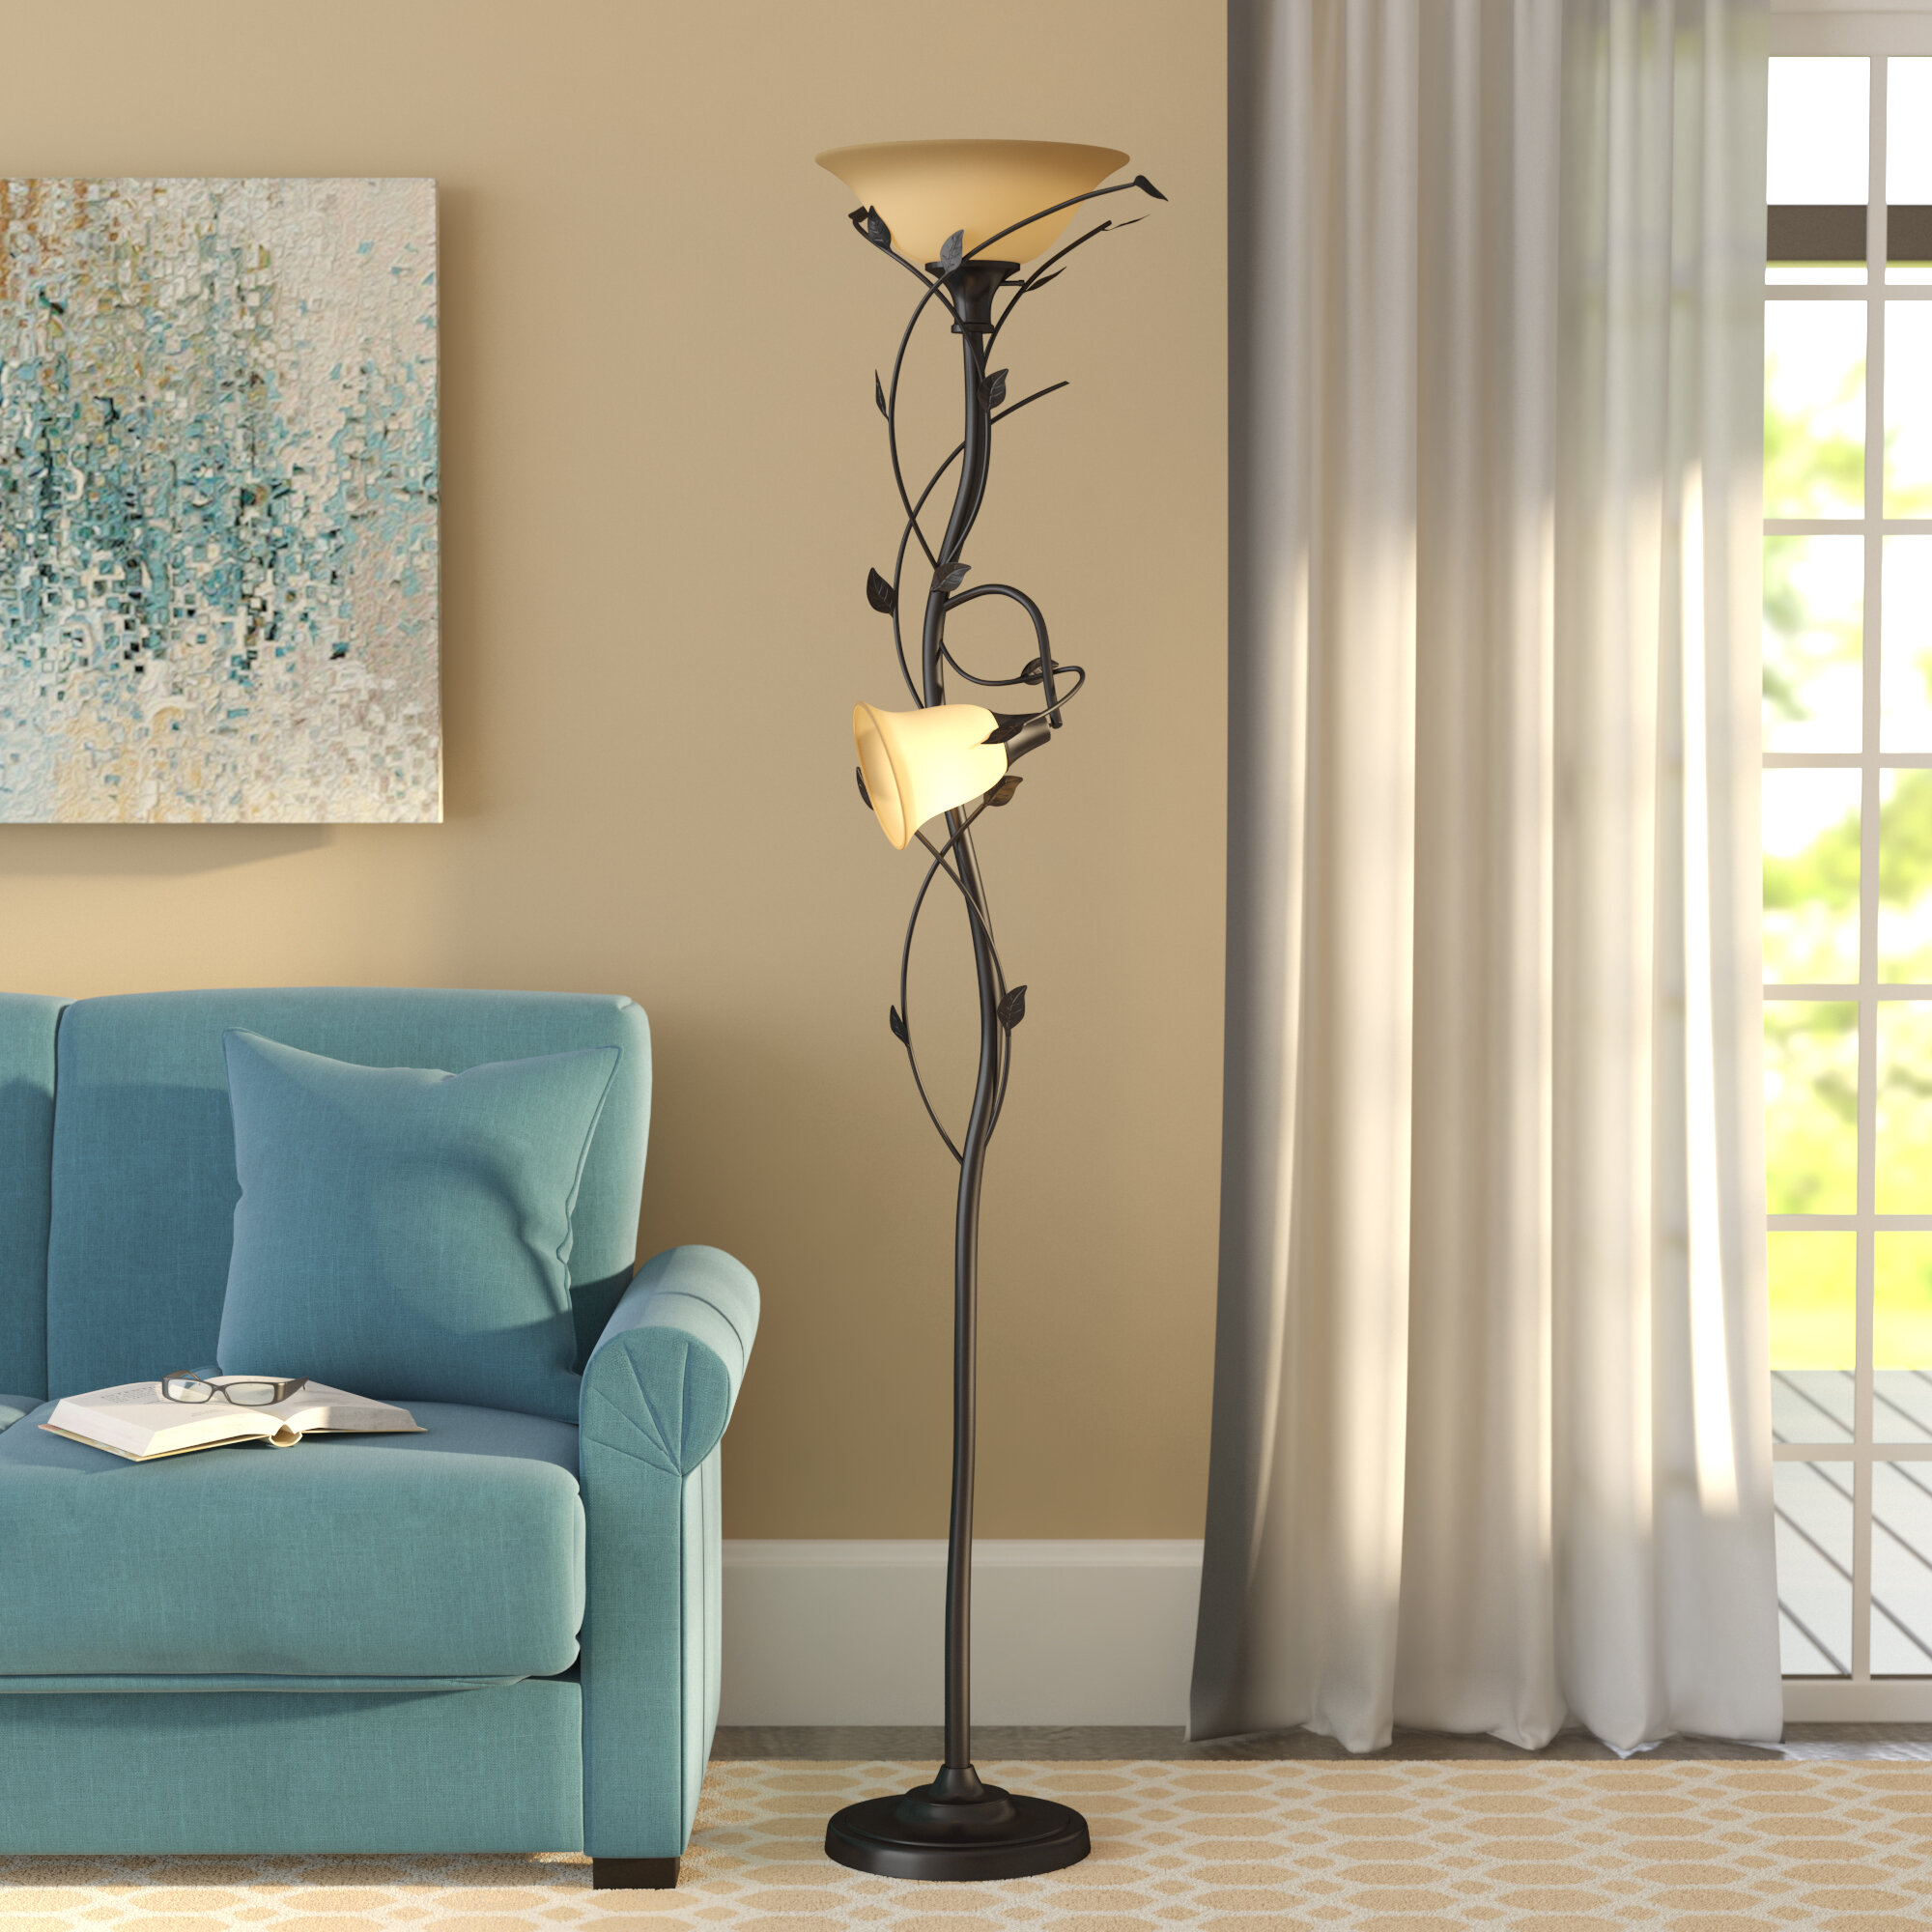 Alcott hill crystal 72 led torchiere floor lamp reviews wayfair mozeypictures Images